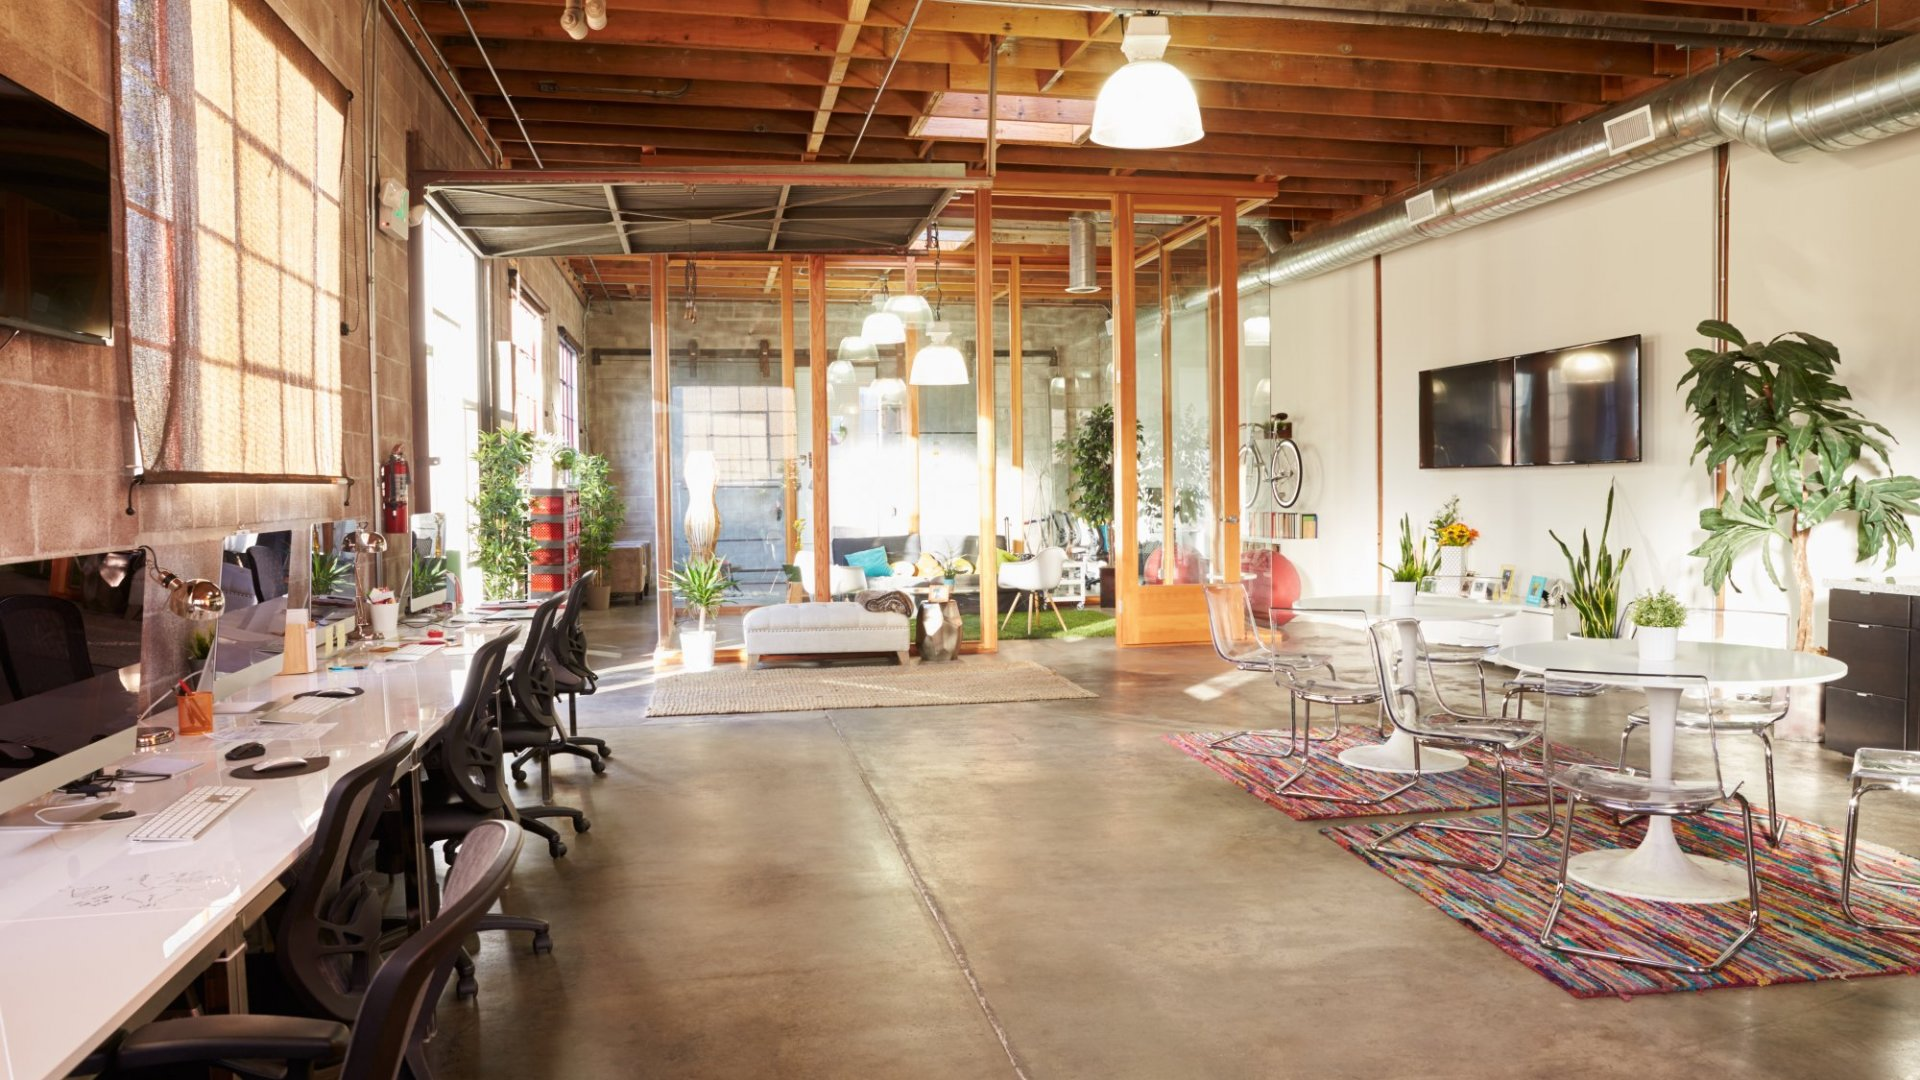 Wake Up Your Work Space With These Unconventional Office Design Tips